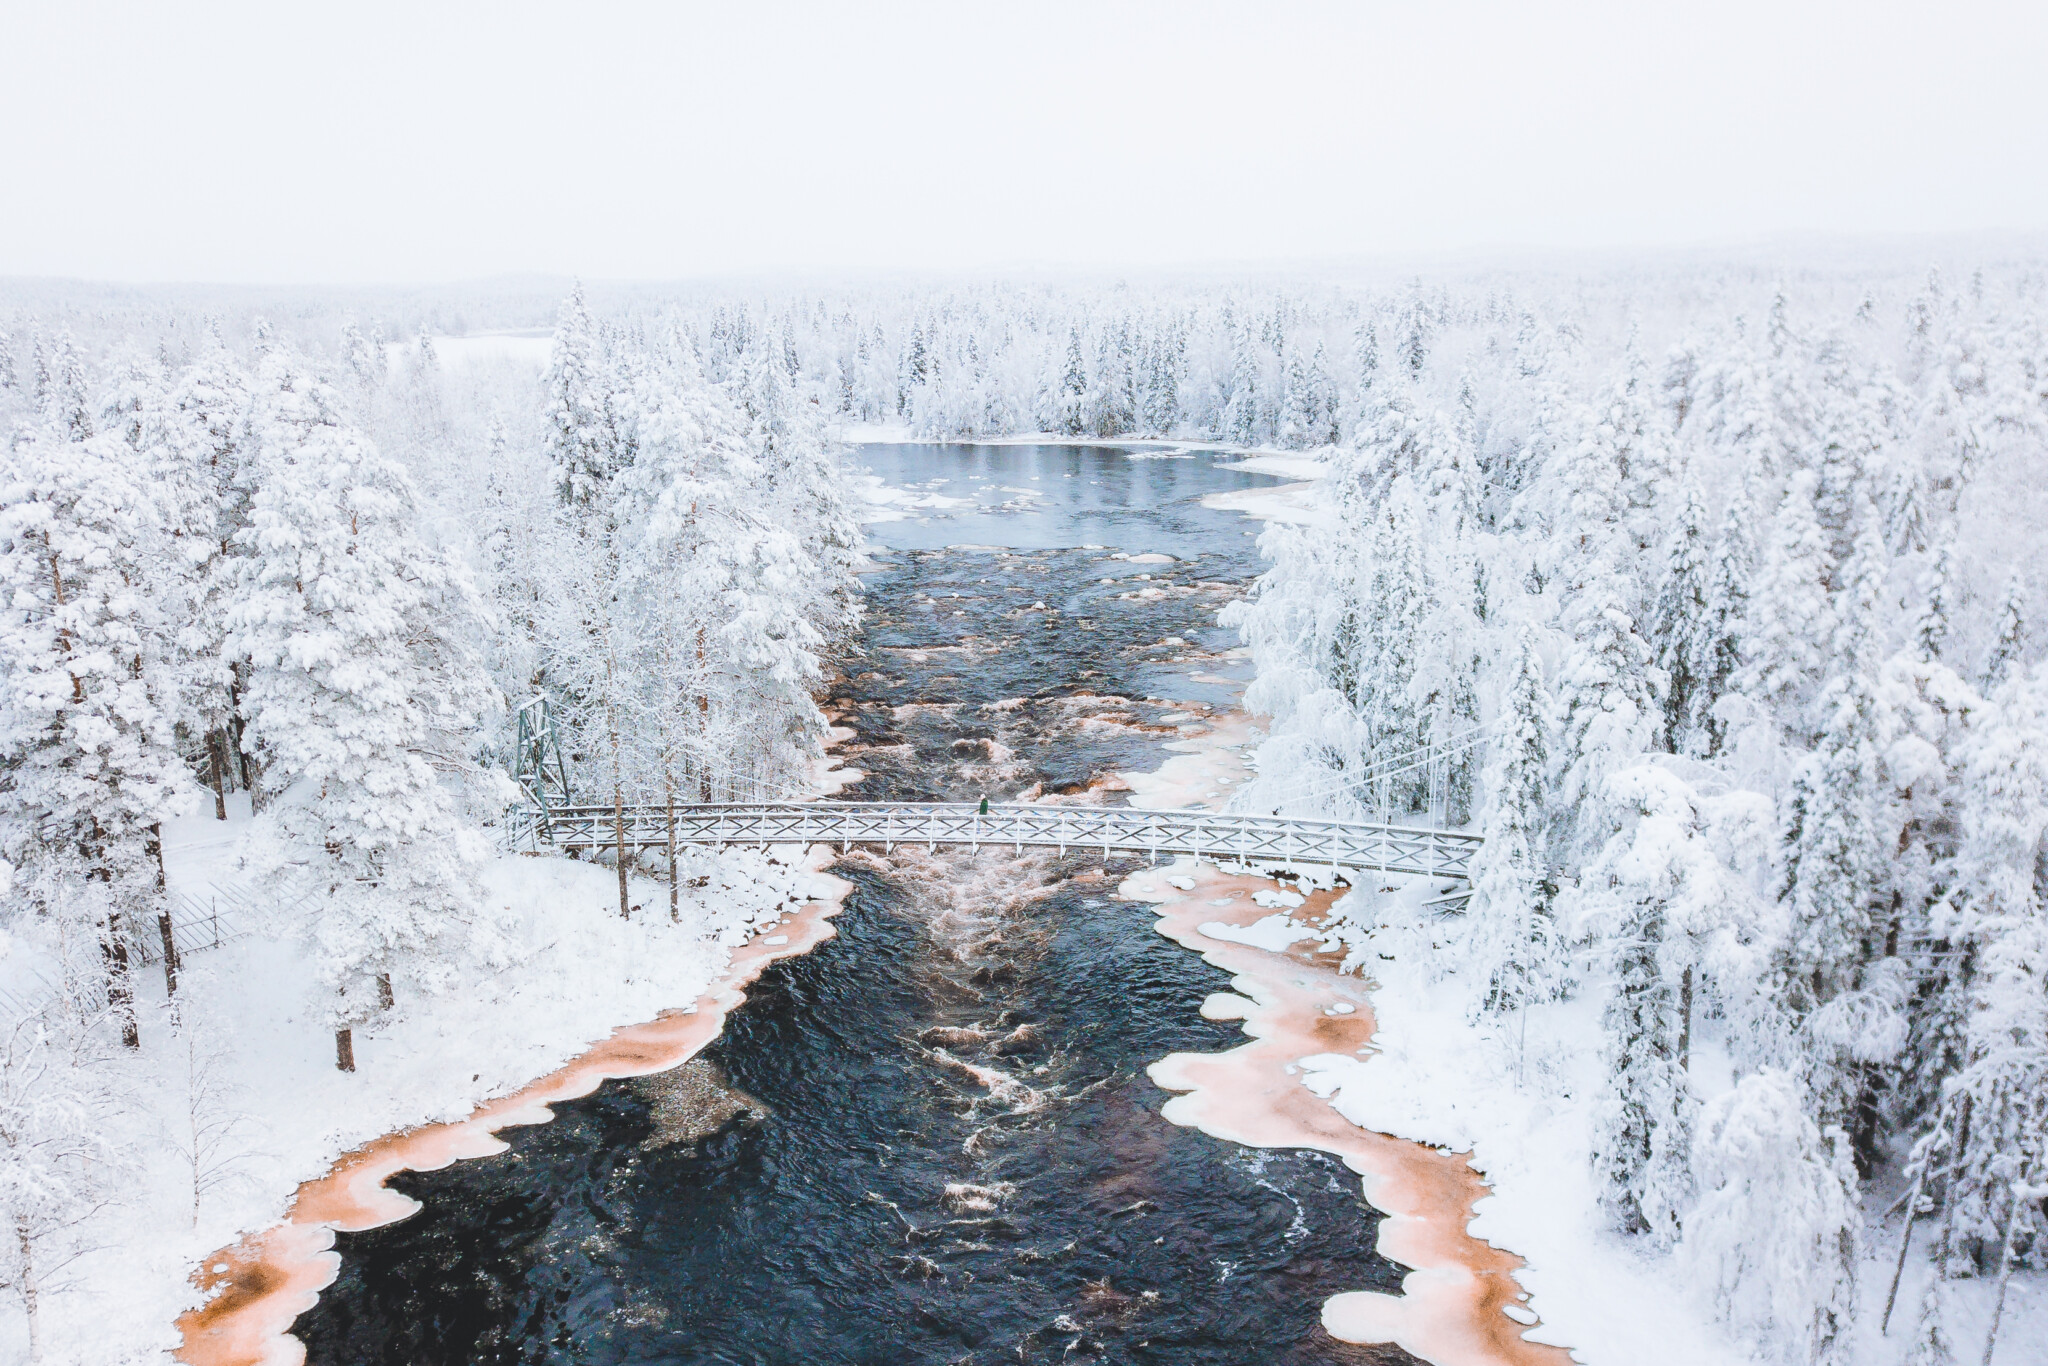 Aerial from Vaattunkikongas in Arctic Circle Hiking Area in Rovaniemi, Lapland, Finland